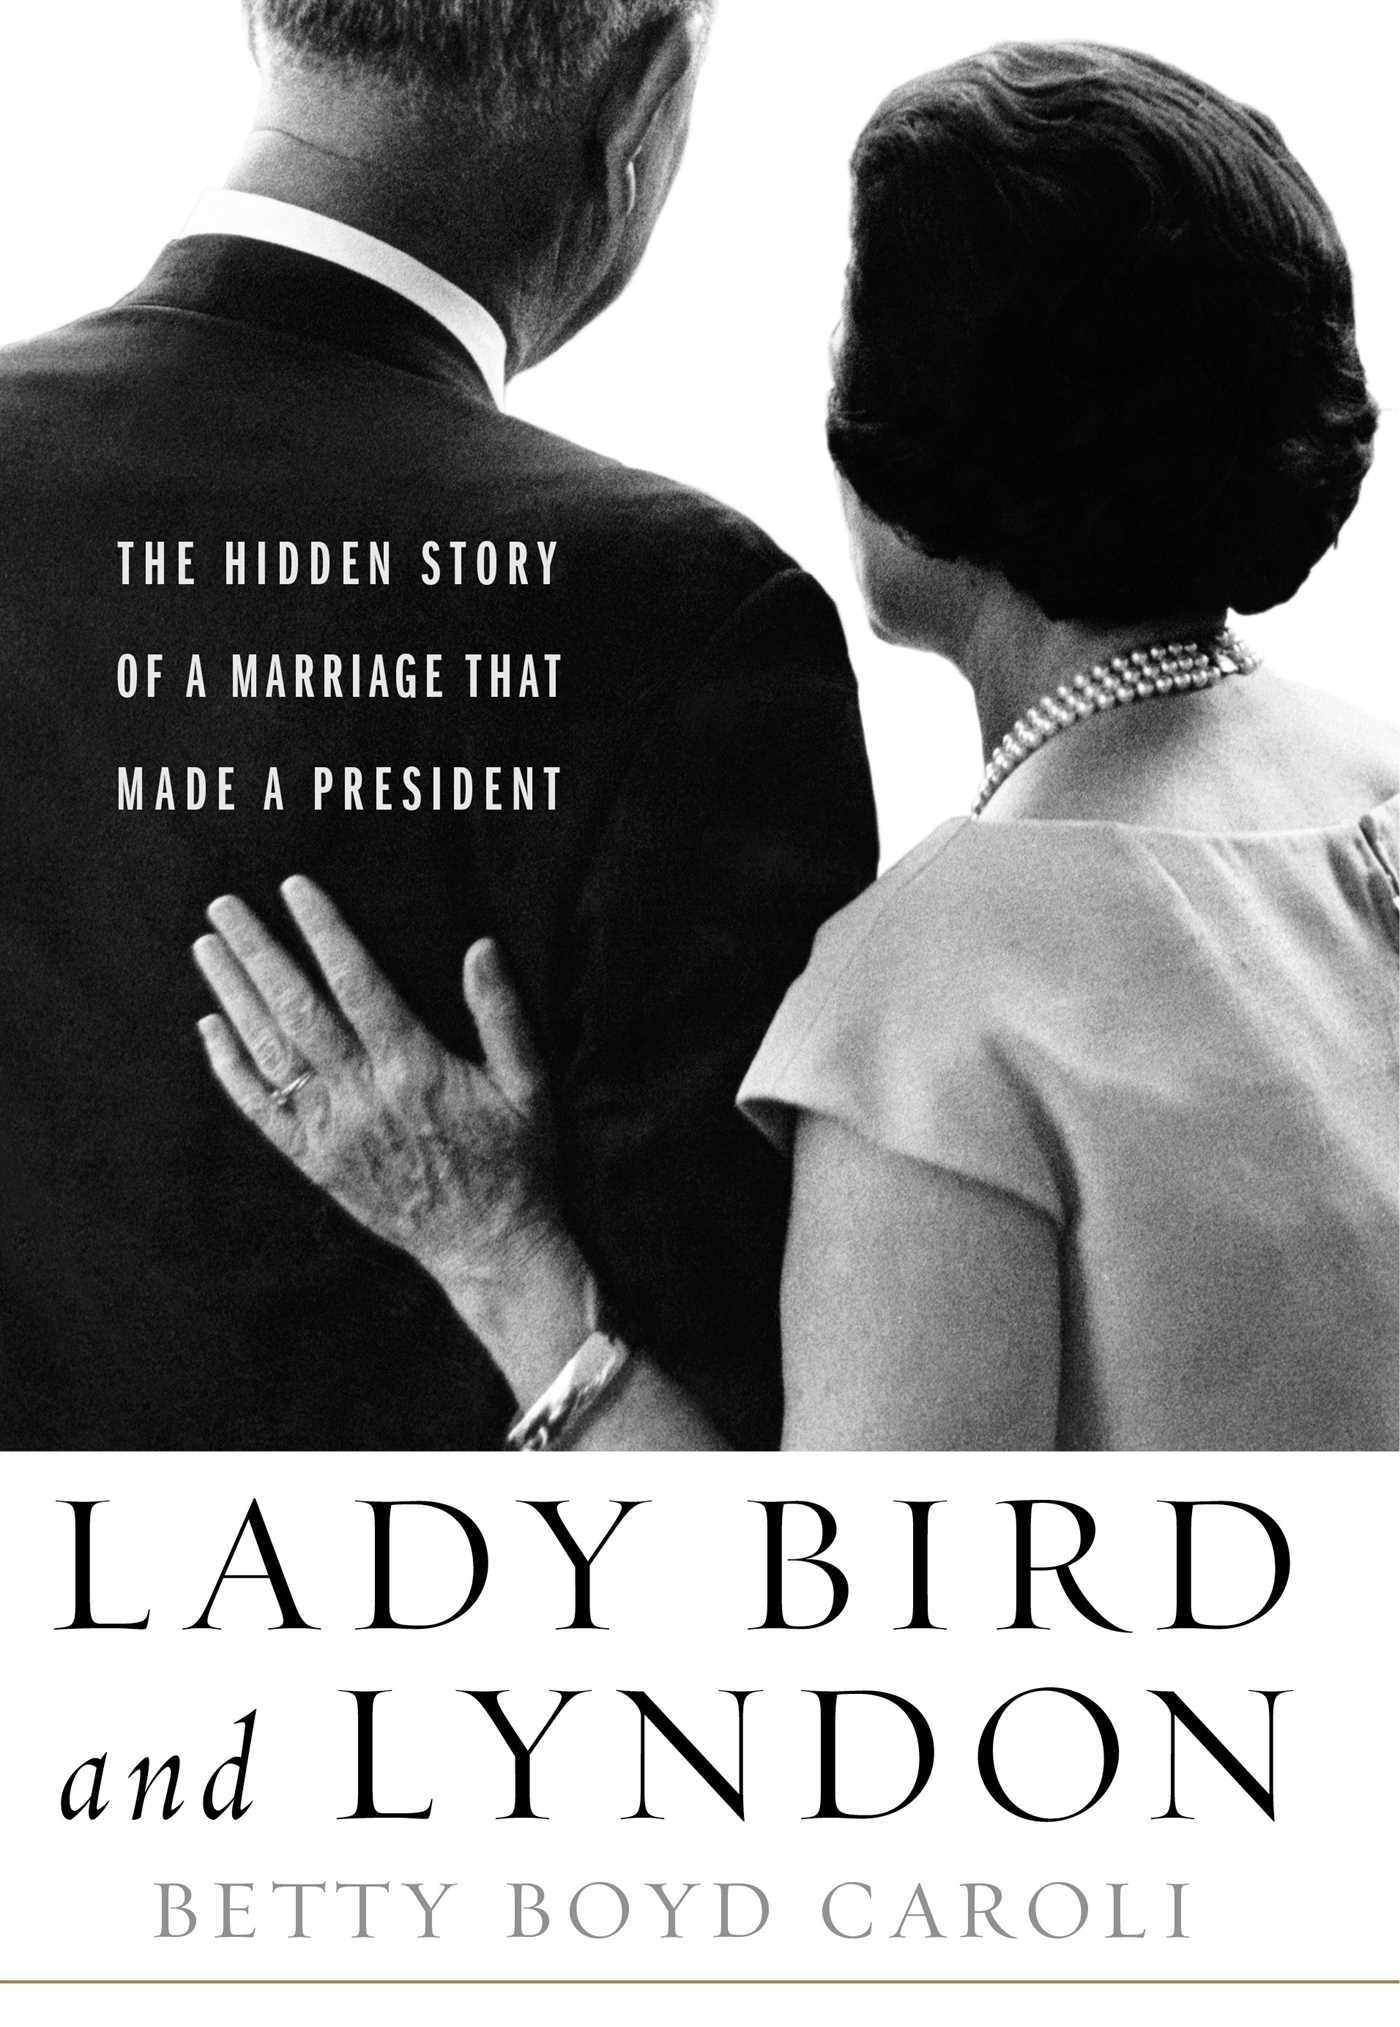 Lady Bird and Lyndon  The Hidden Story of a Marriage That Made a President